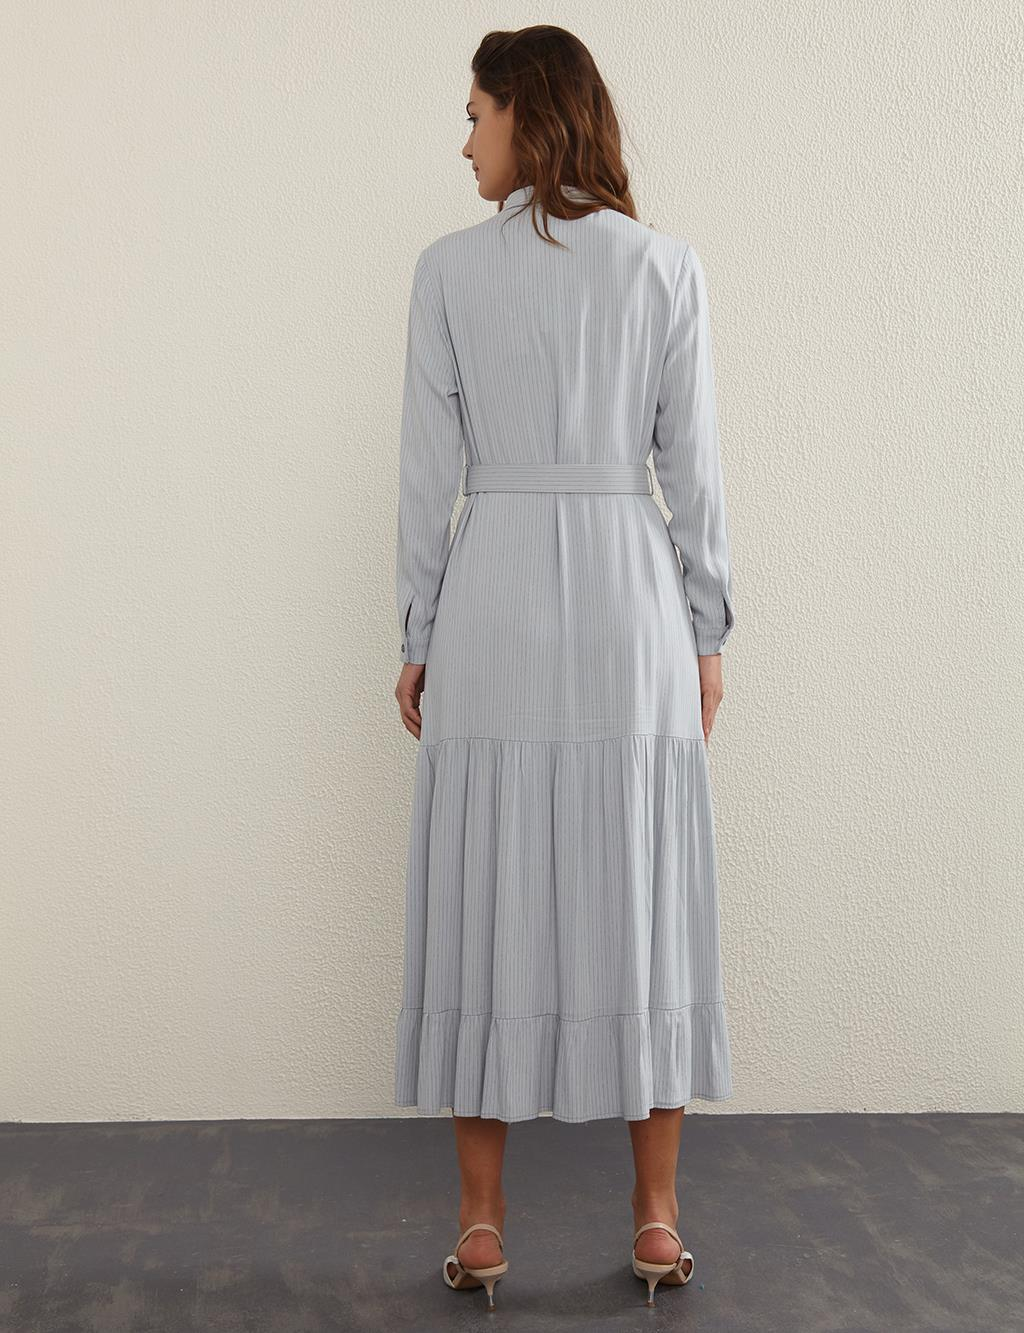 KYR Belted, Striped Dress B21 83009 Grey